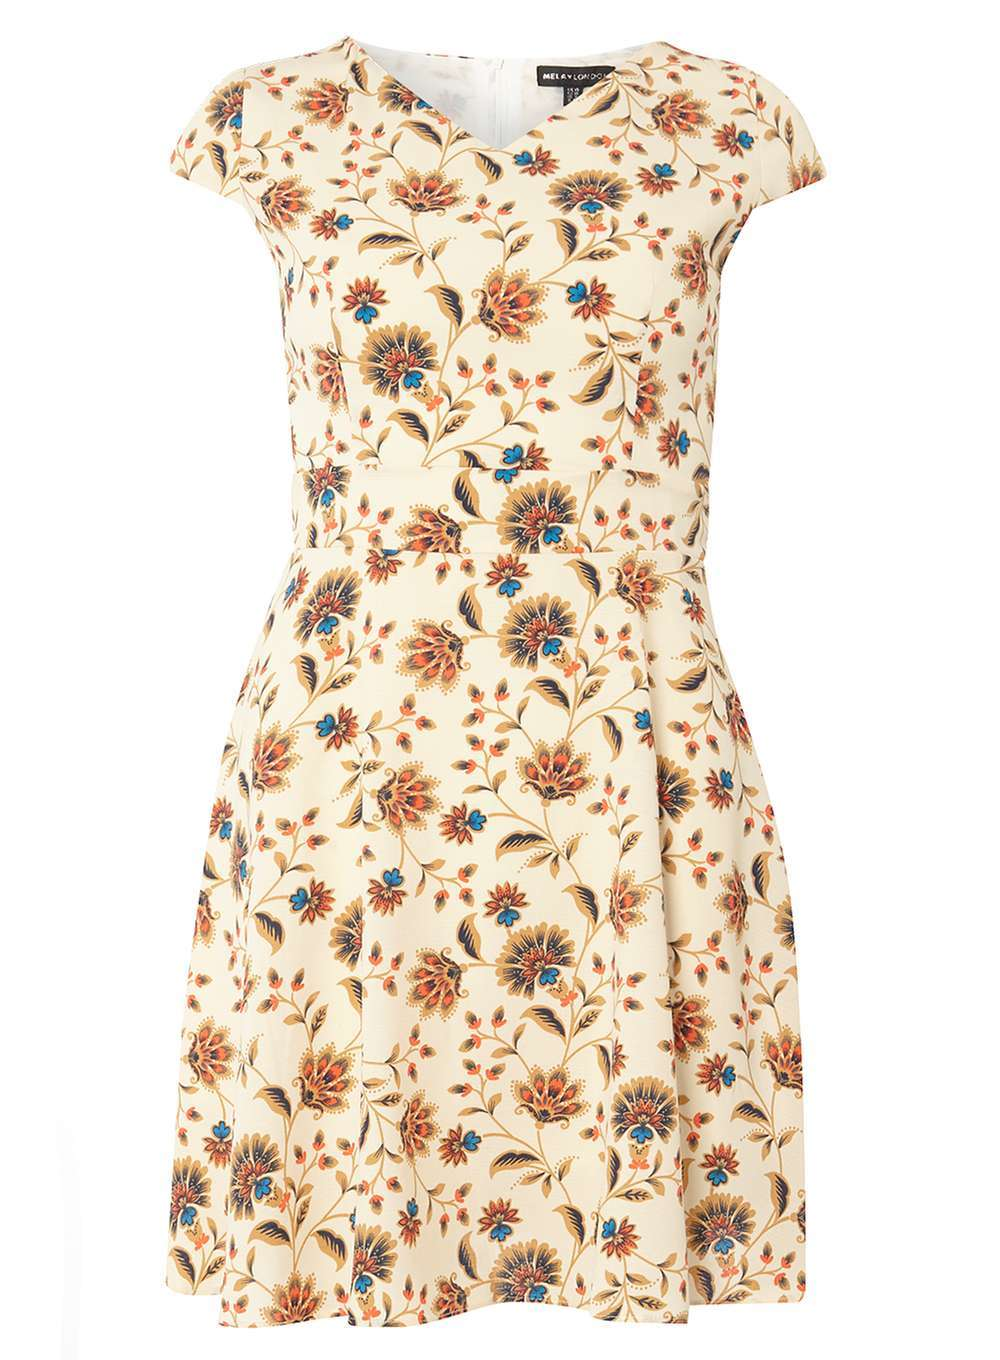 Womens **Mela Orange Flower Print Dress Orange - style: shift; neckline: v-neck; sleeve style: capped; predominant colour: nude; occasions: casual, creative work; length: just above the knee; fit: body skimming; fibres: polyester/polyamide - 100%; hip detail: subtle/flattering hip detail; sleeve length: short sleeve; pattern type: fabric; pattern: patterned/print; texture group: other - light to midweight; season: a/w 2016; wardrobe: highlight